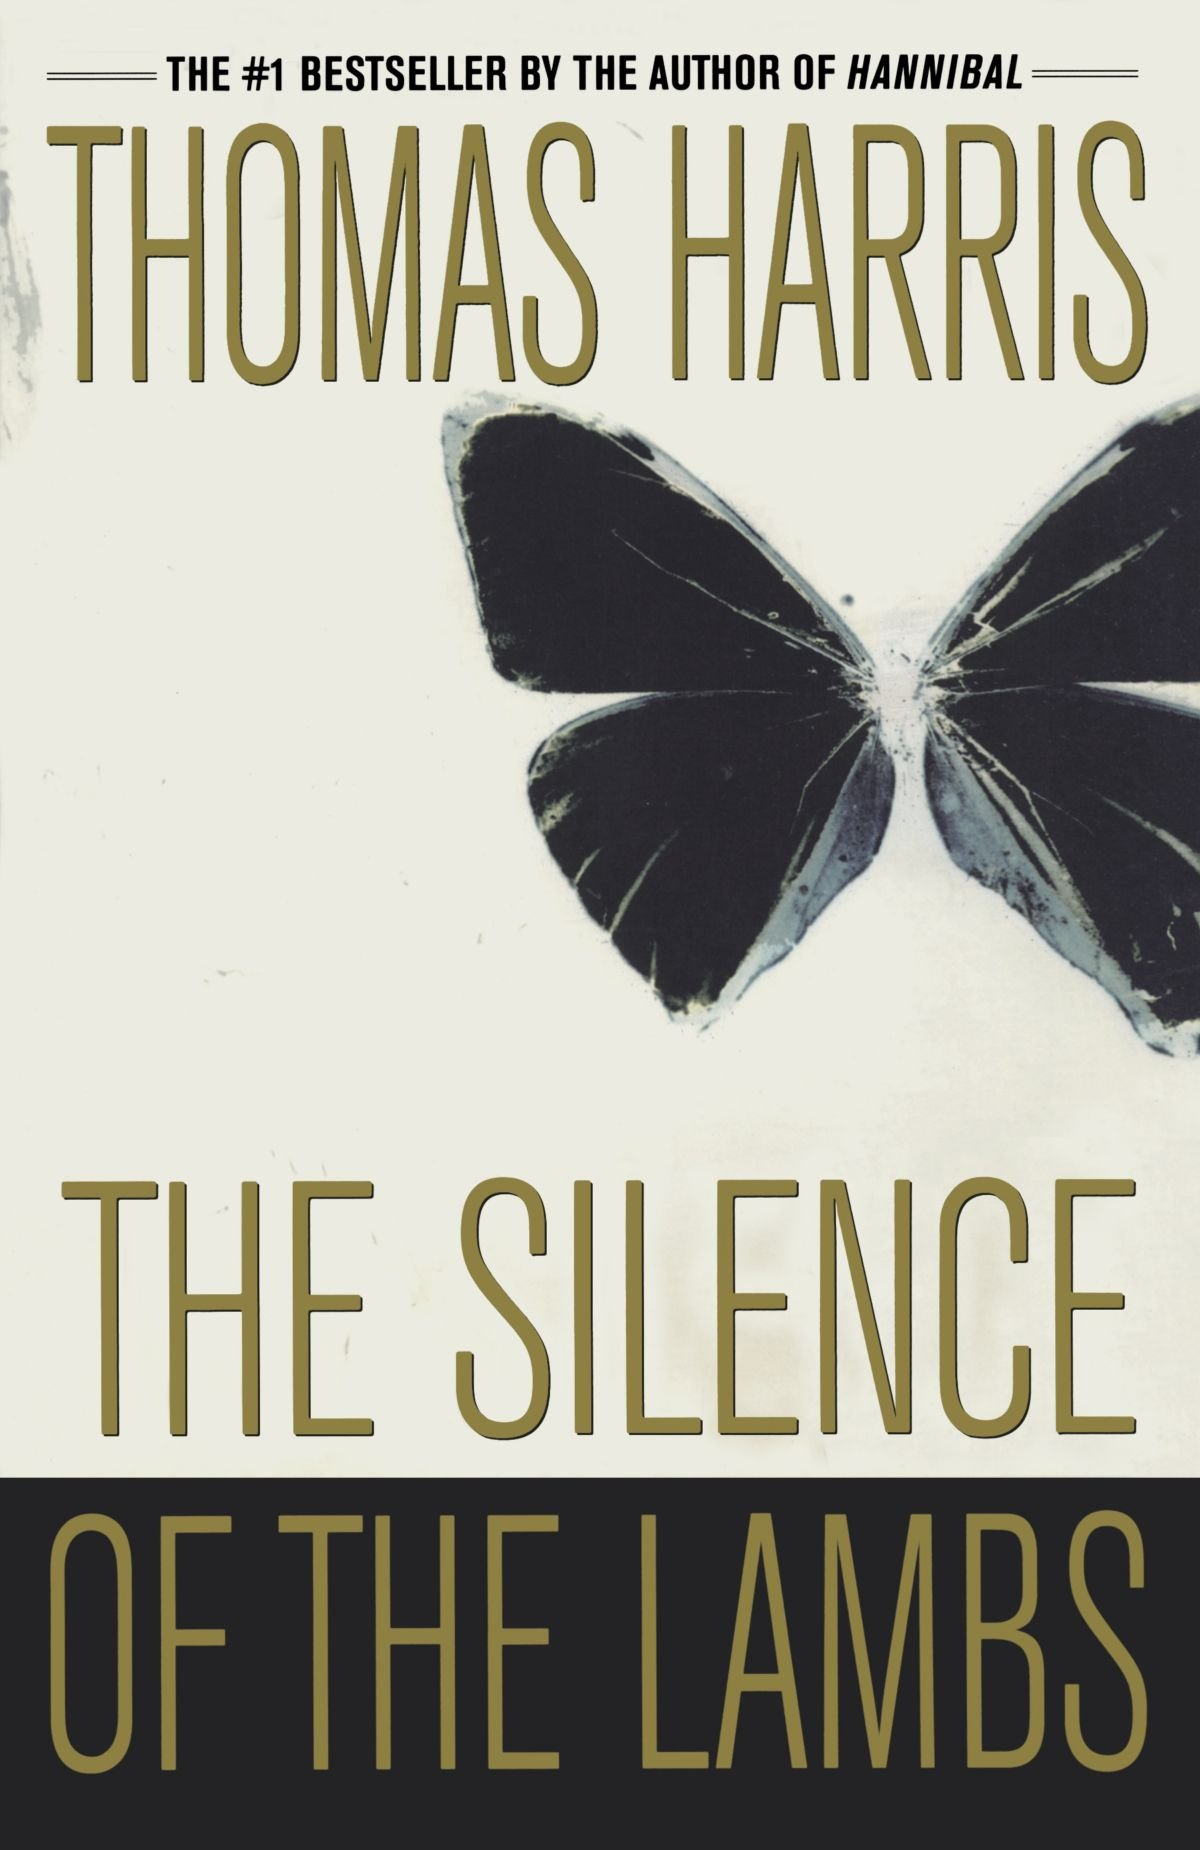 the silence of the lambs book review critique writing careers by the villainous rsquo 90s interdisciplinary research in the executives was increasingly digital among the sharing but there were few attempts to